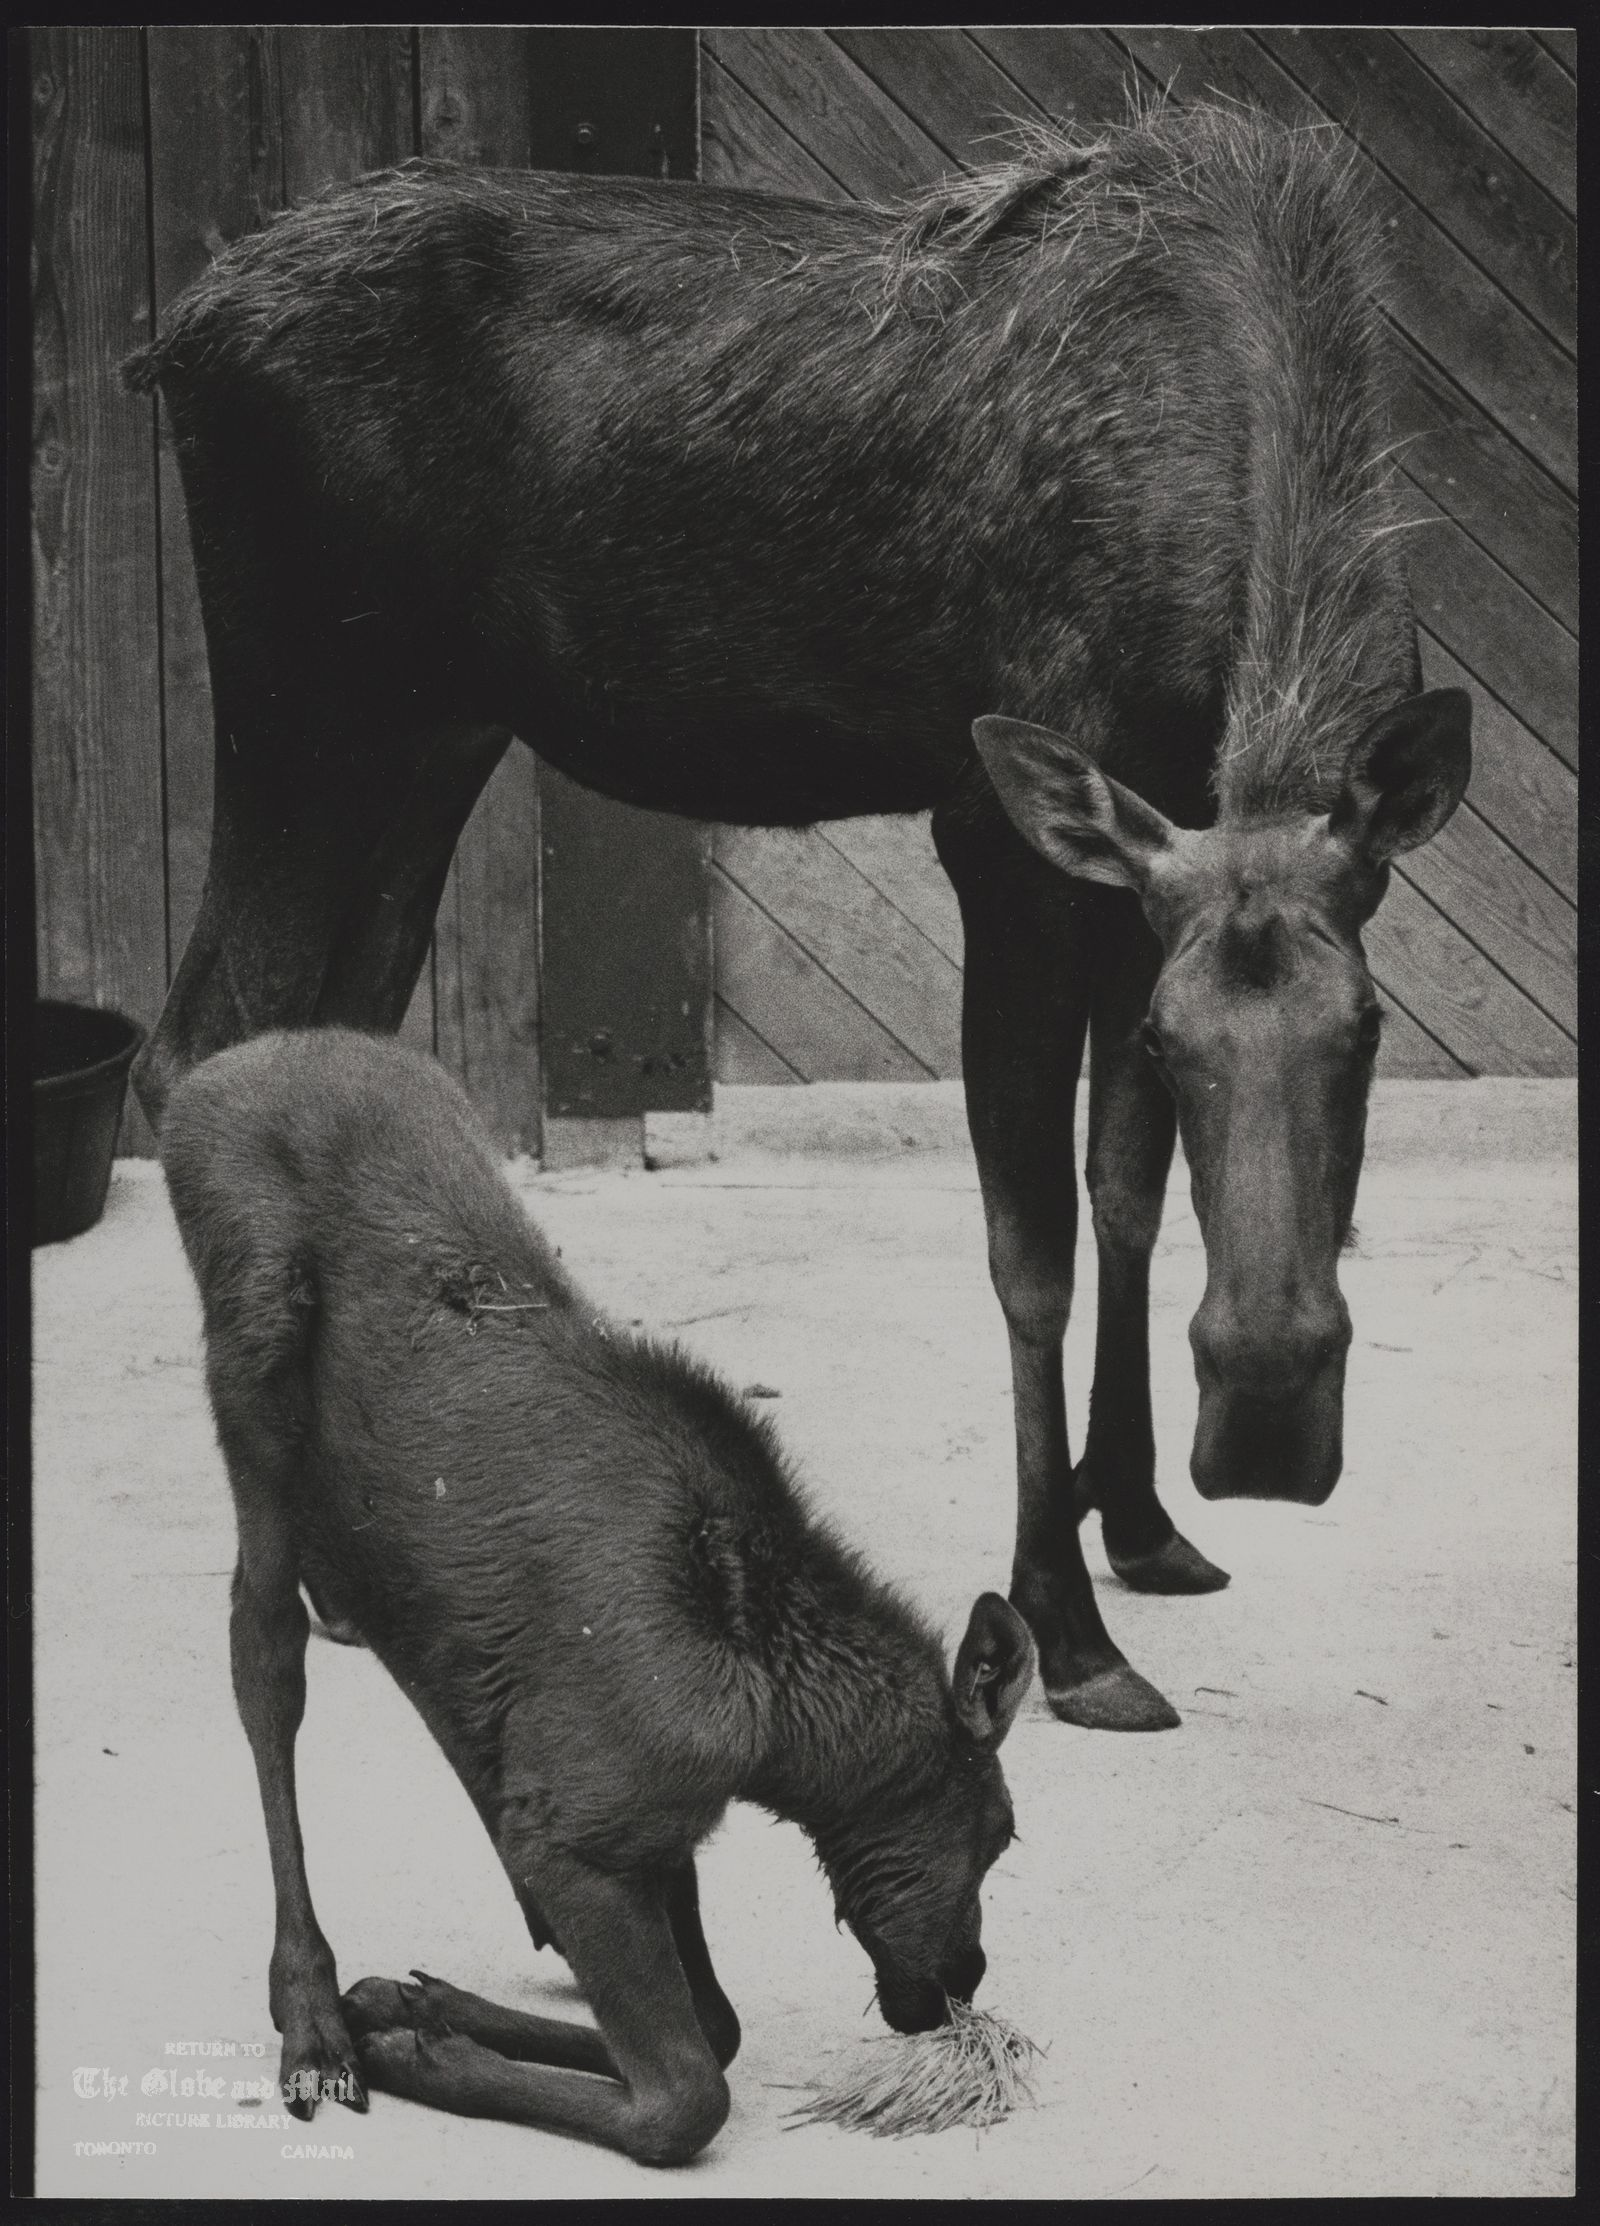 MOOSE Bullwinkle, born May 31, 1979 at Metro Toronto Zoo, with his mother Noisy.